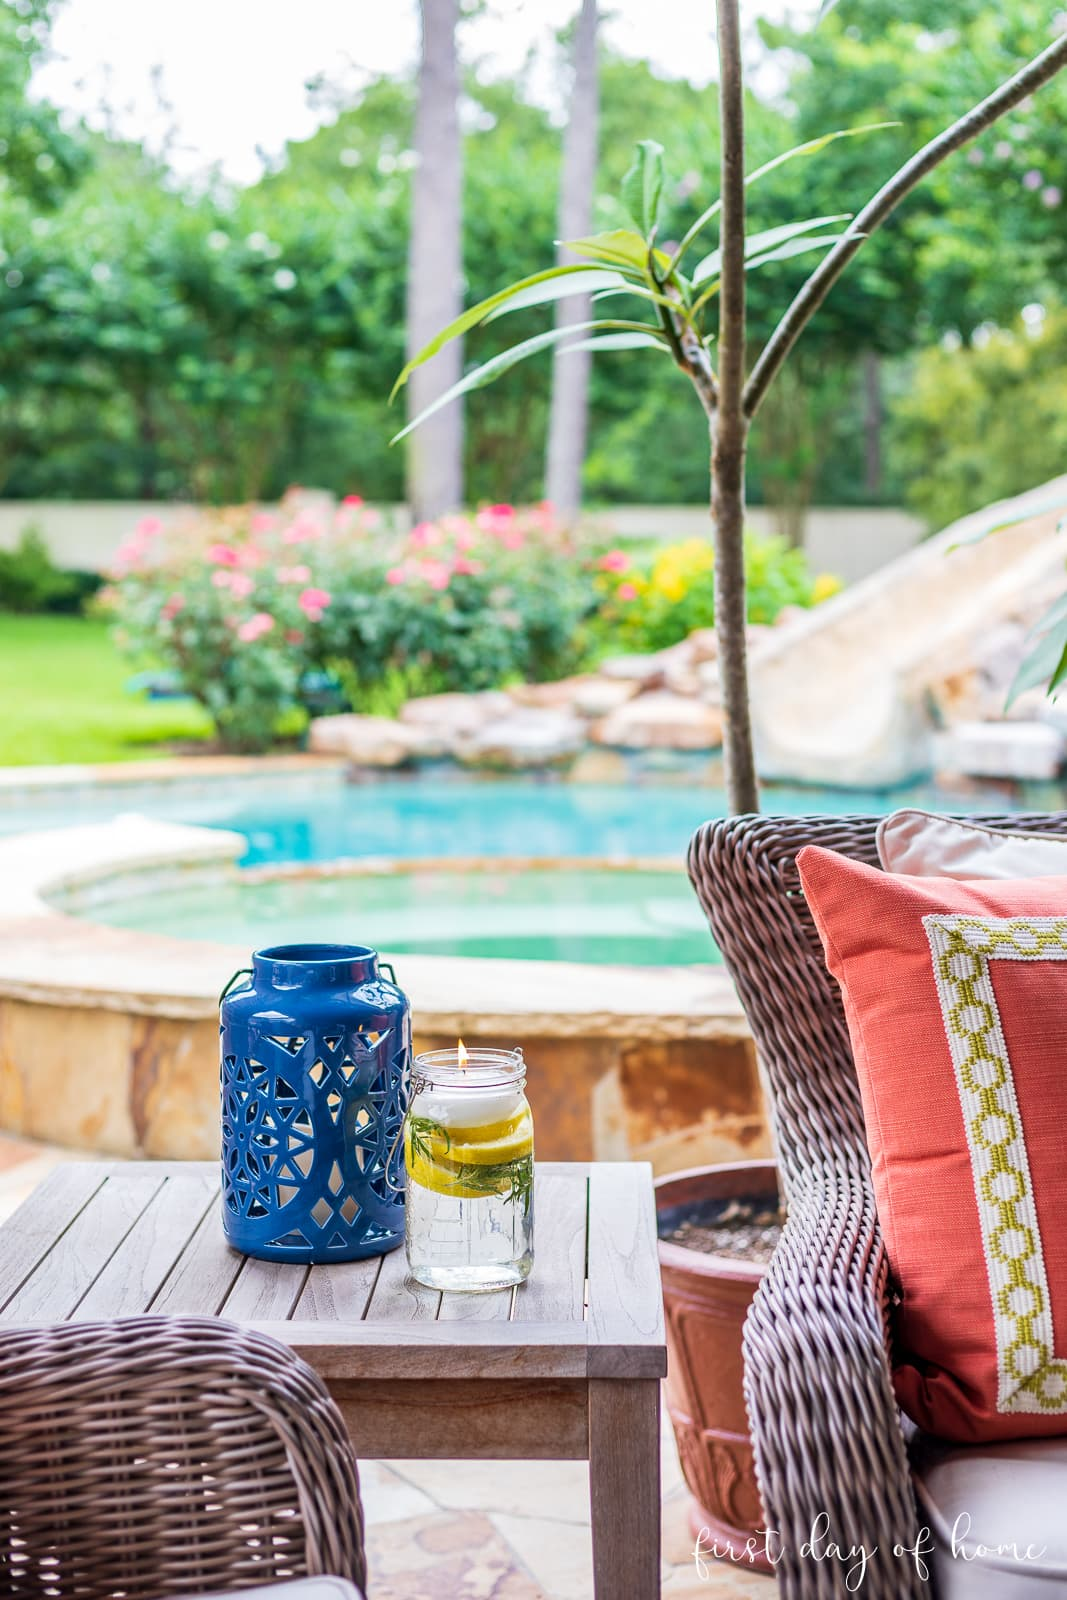 Mosquito repellent mason jar luminary with lantern on outdoor patio with pool in background